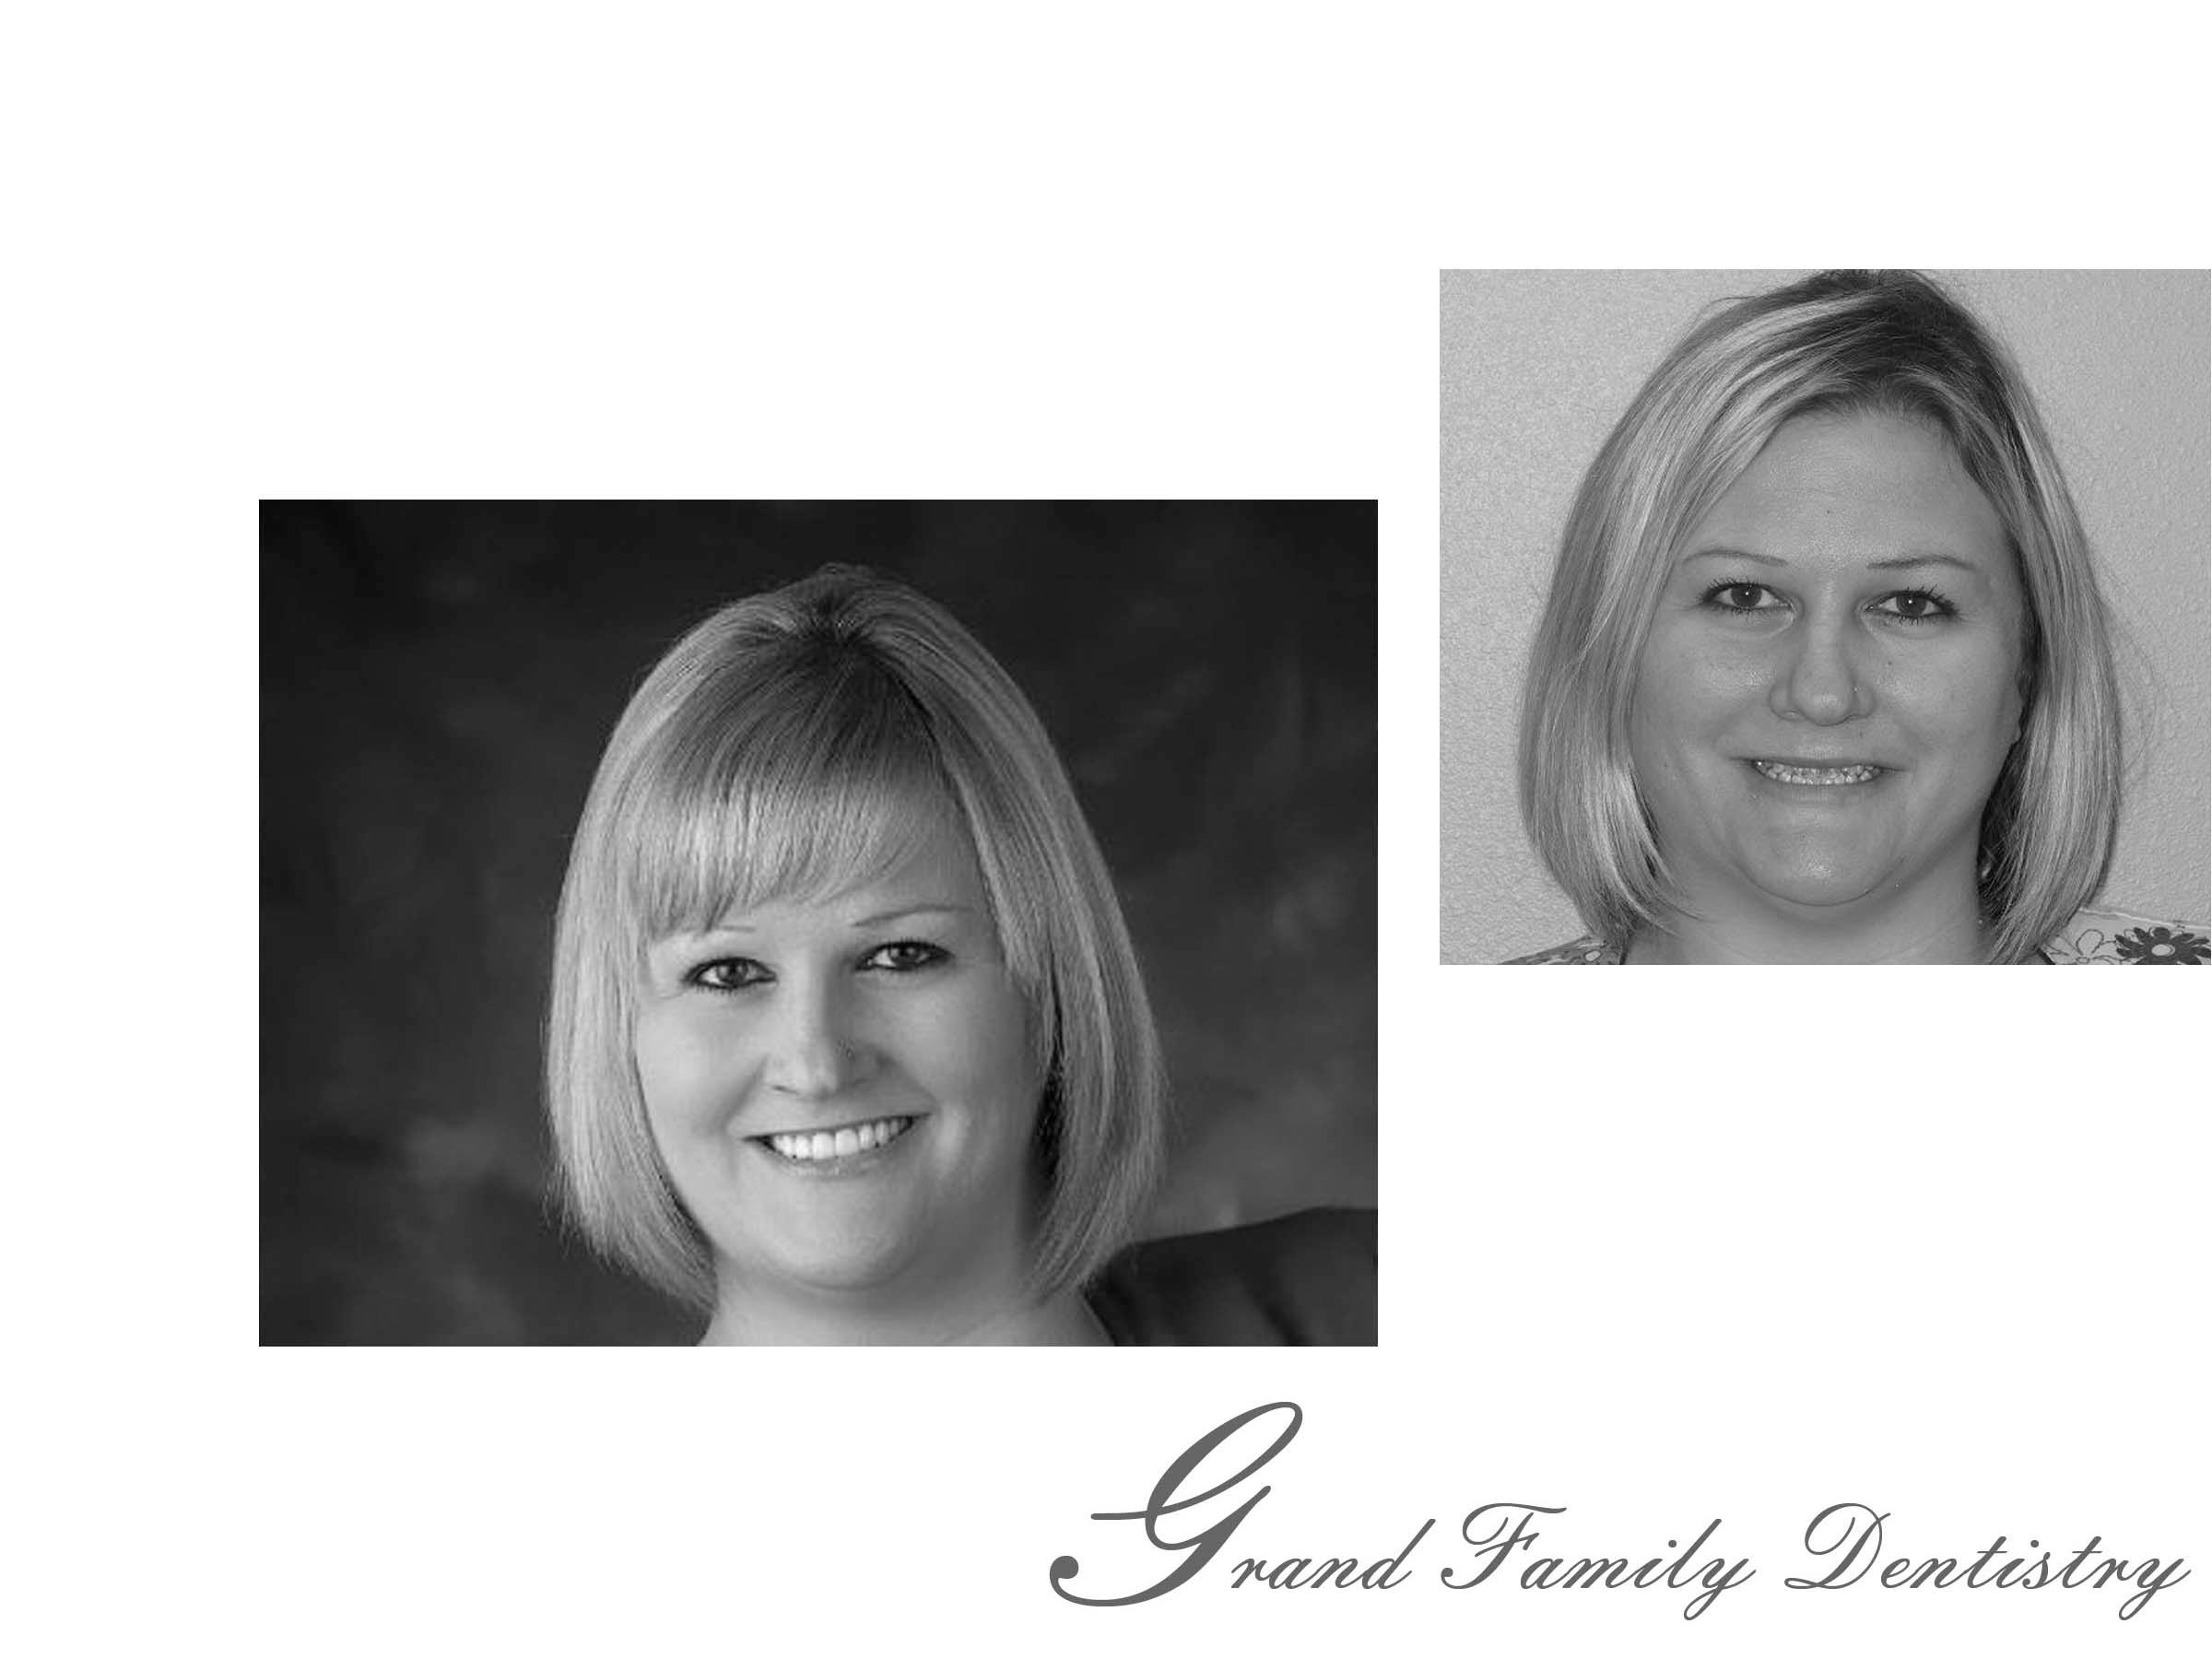 Grand Family Dentistry image 5